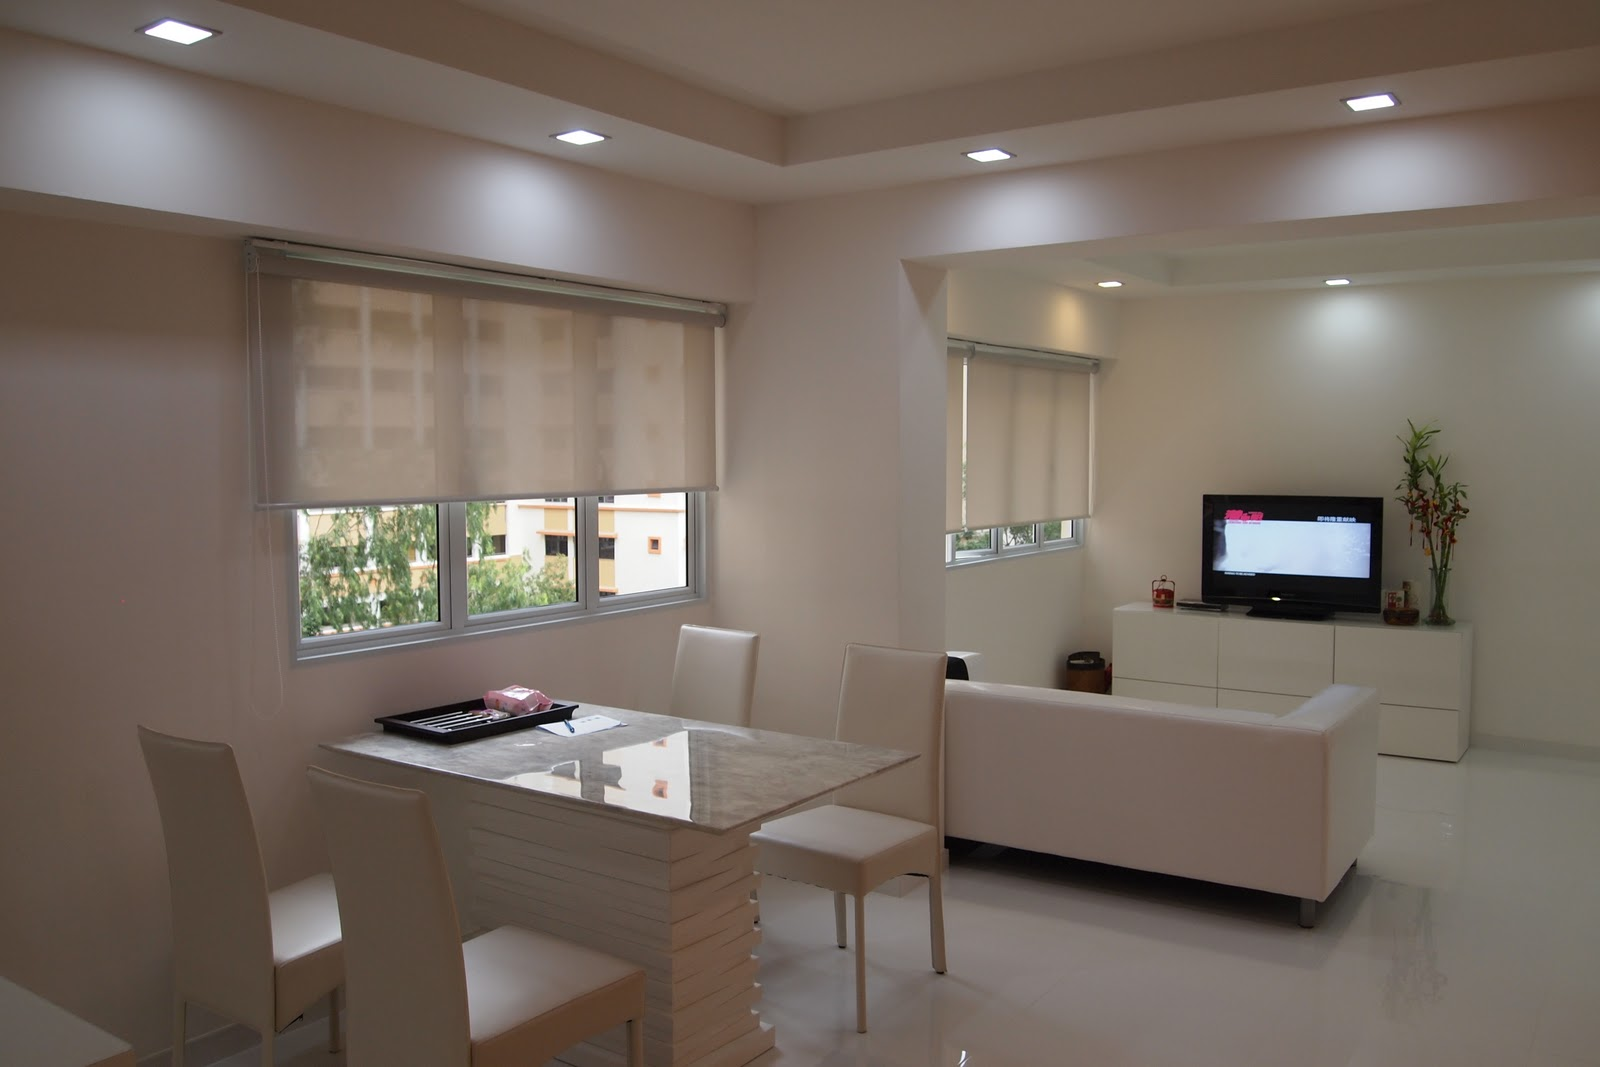 Plaster Ceiling & Partition Drywall Singapore: Living room